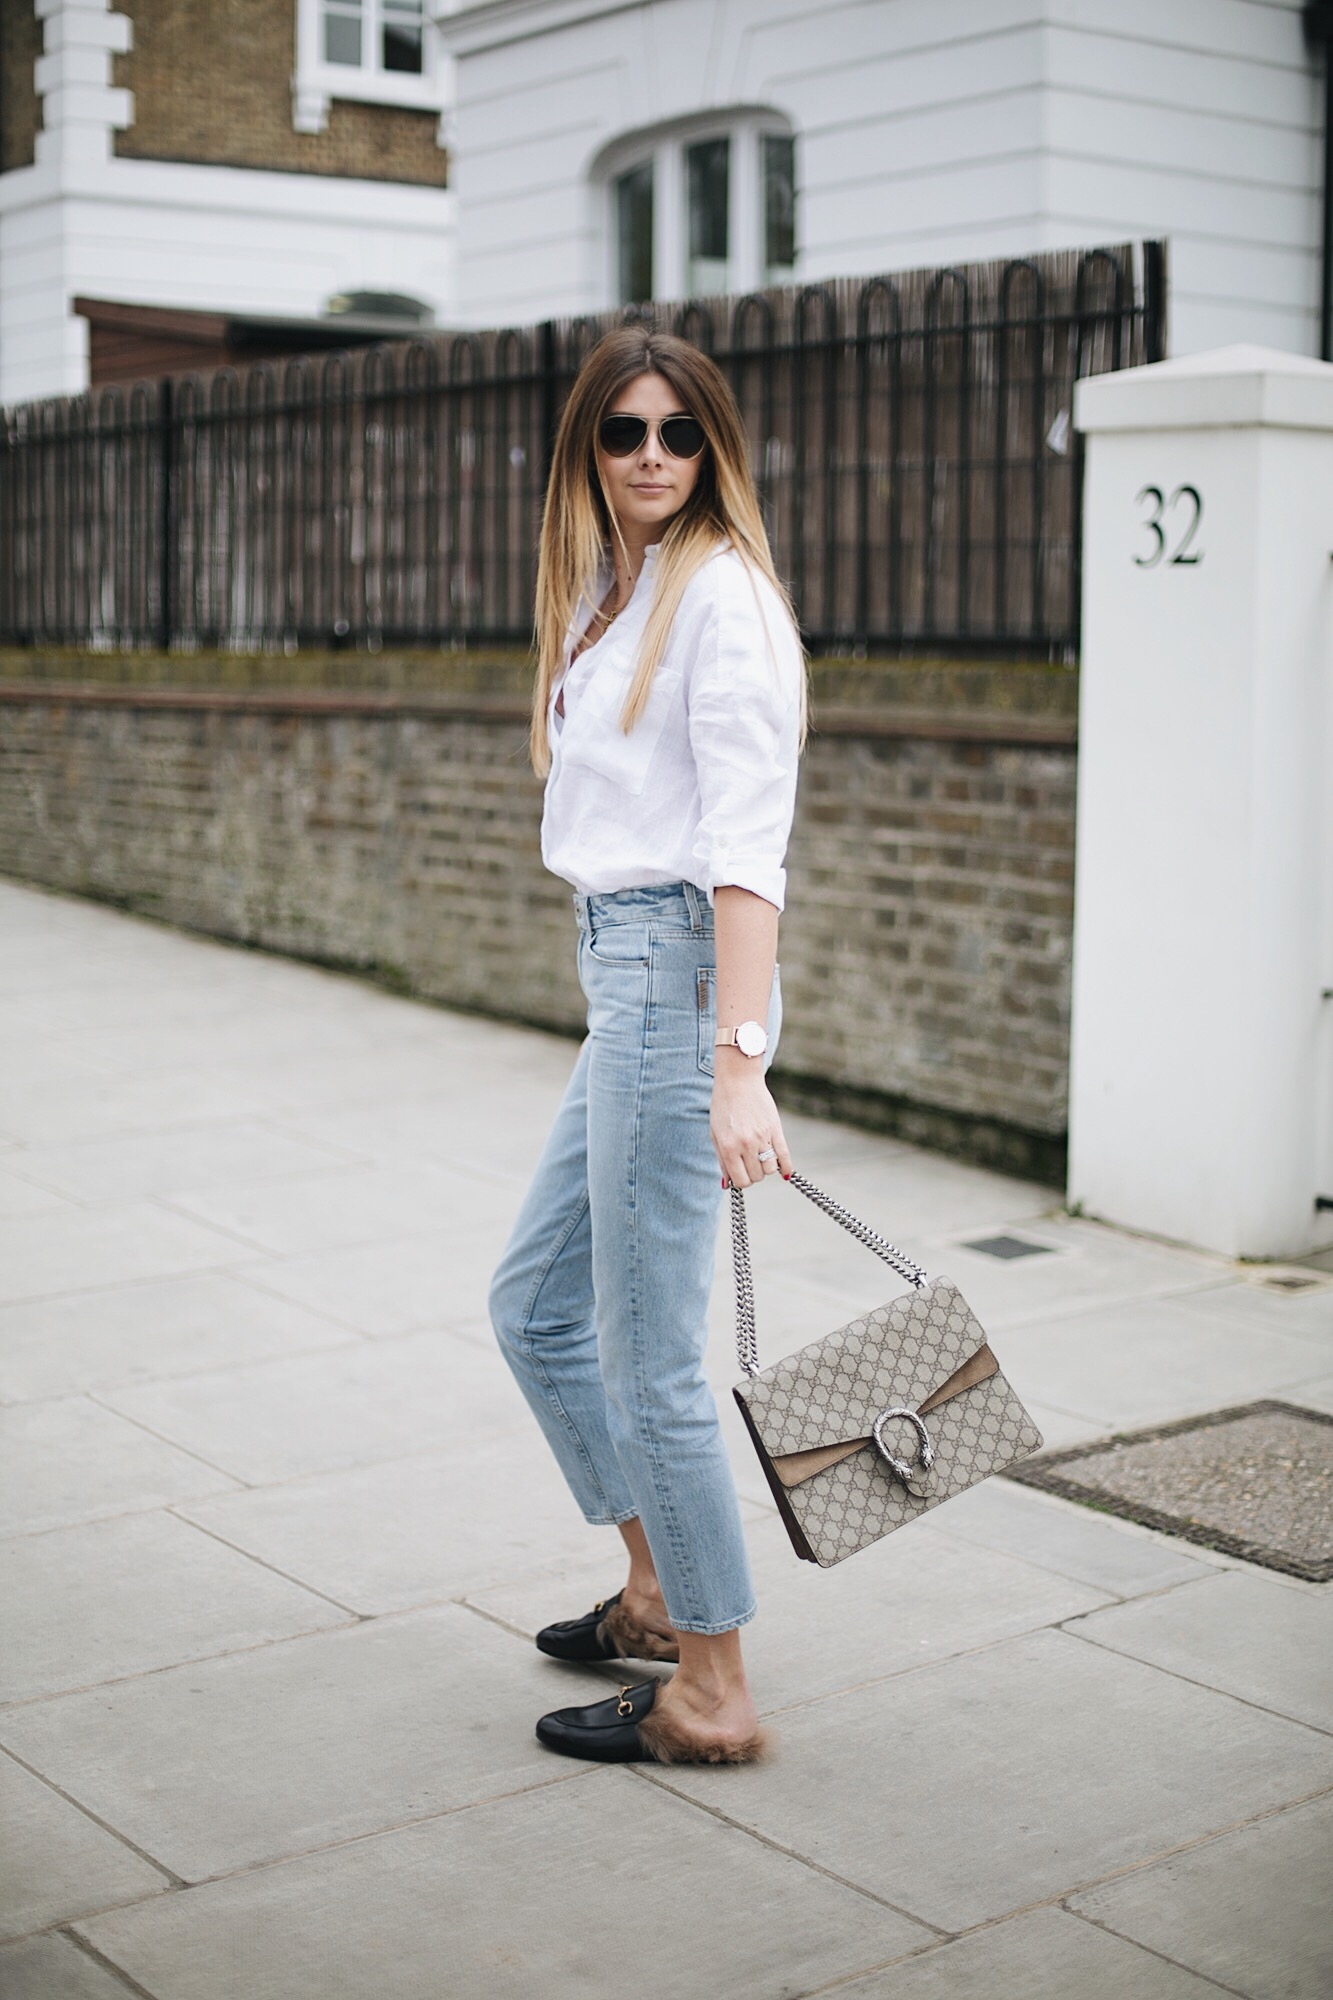 white shirt, light wash mom jeans, Gucci Dioysus bag, Gucci fur Princetown slippers loafers, aviator sunglasses, casual summer outfit